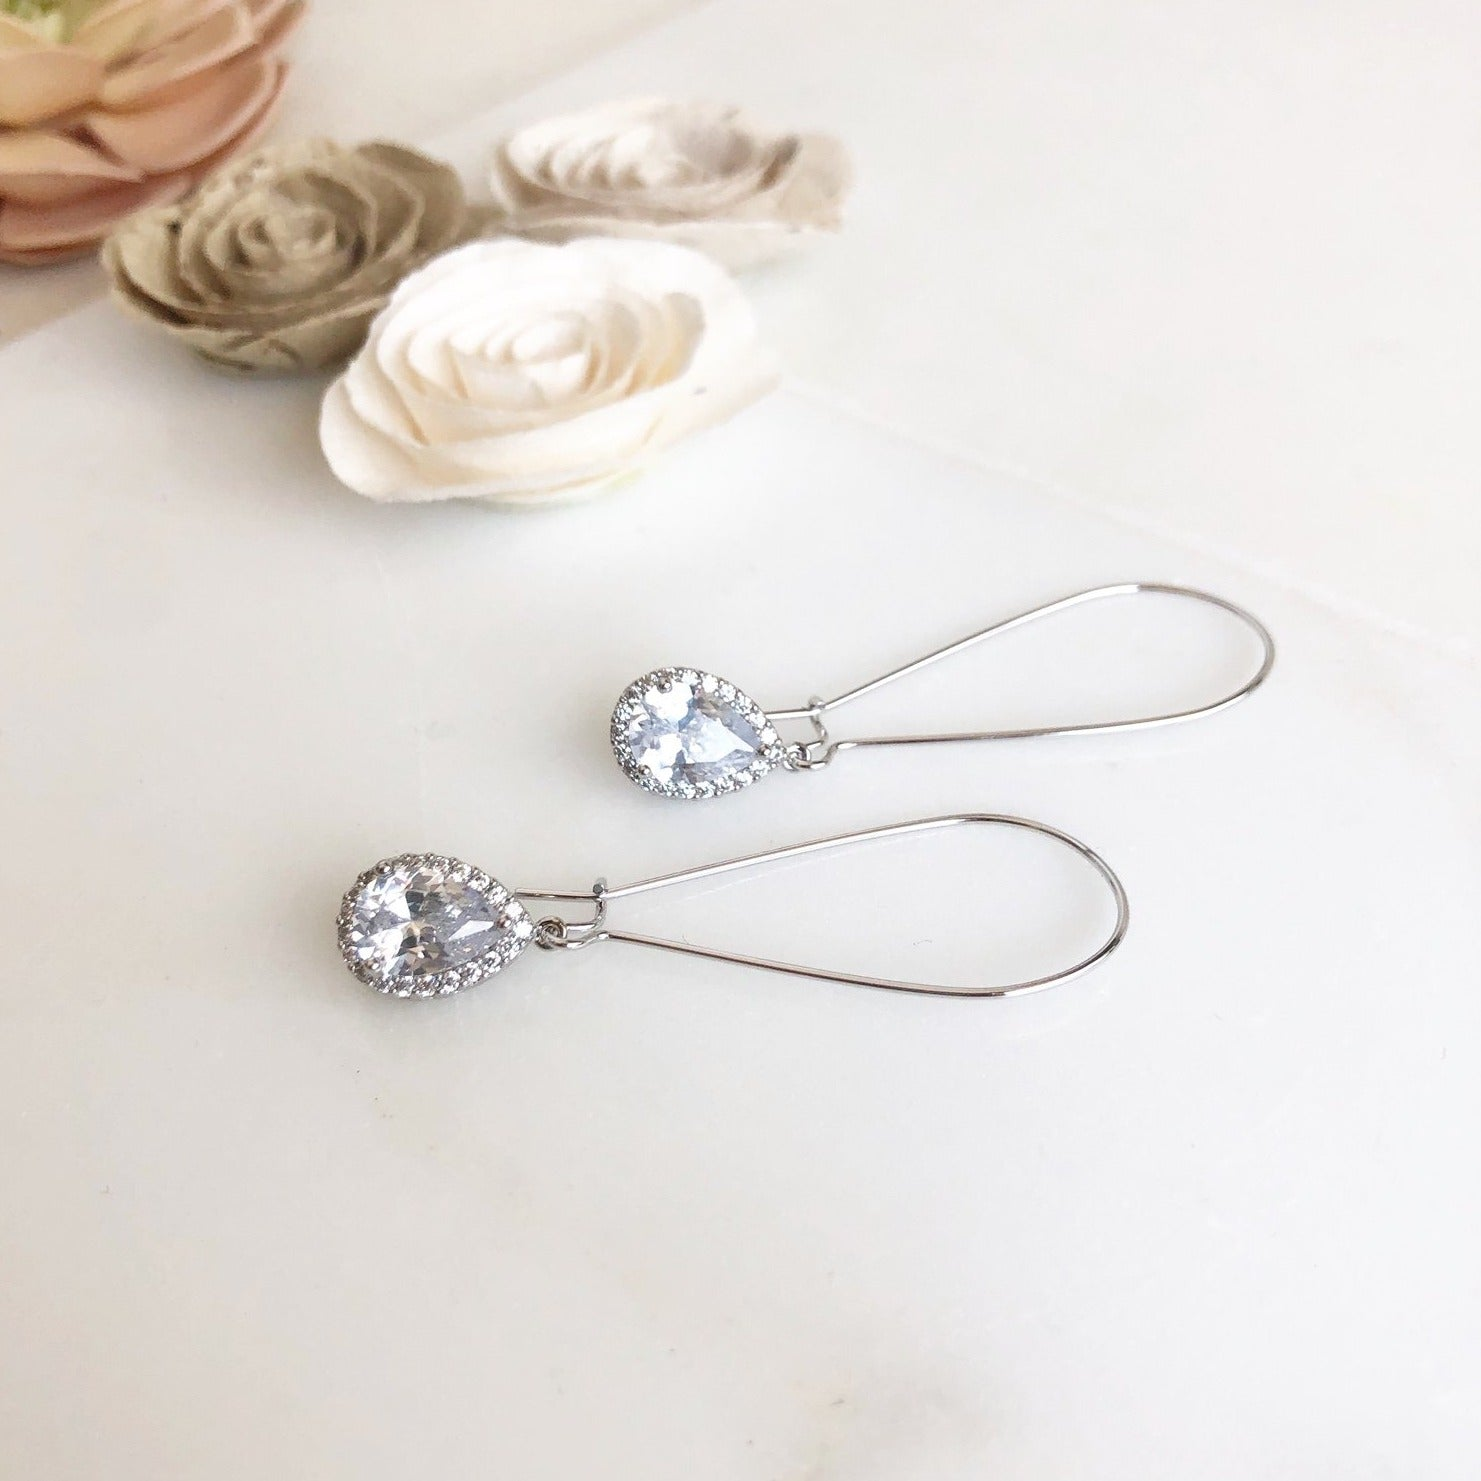 Large Simple Silver Bridal Drop Earrings. Cubic Zirconia Drops. Dangle Earrings.